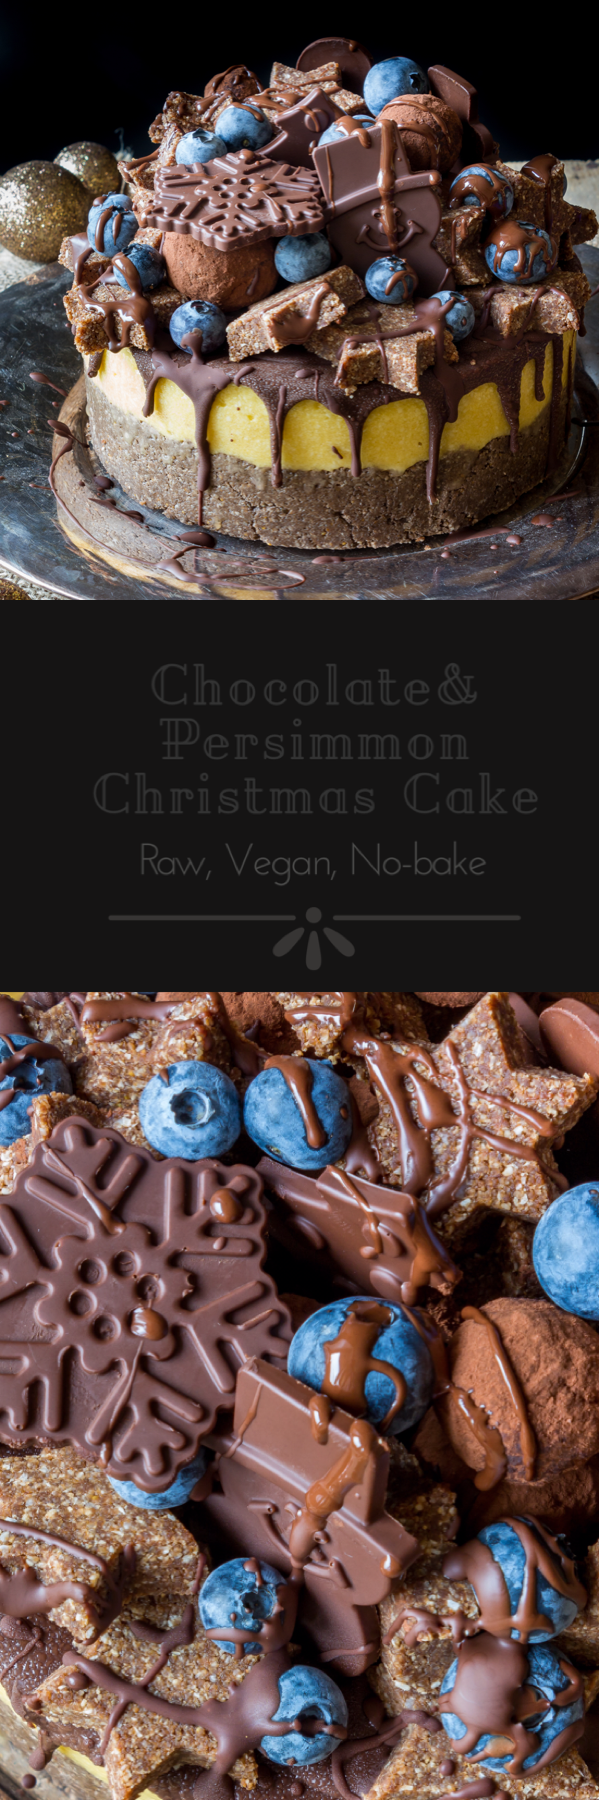 #raw #vegan Christmas Cake from Deviliciously Raw